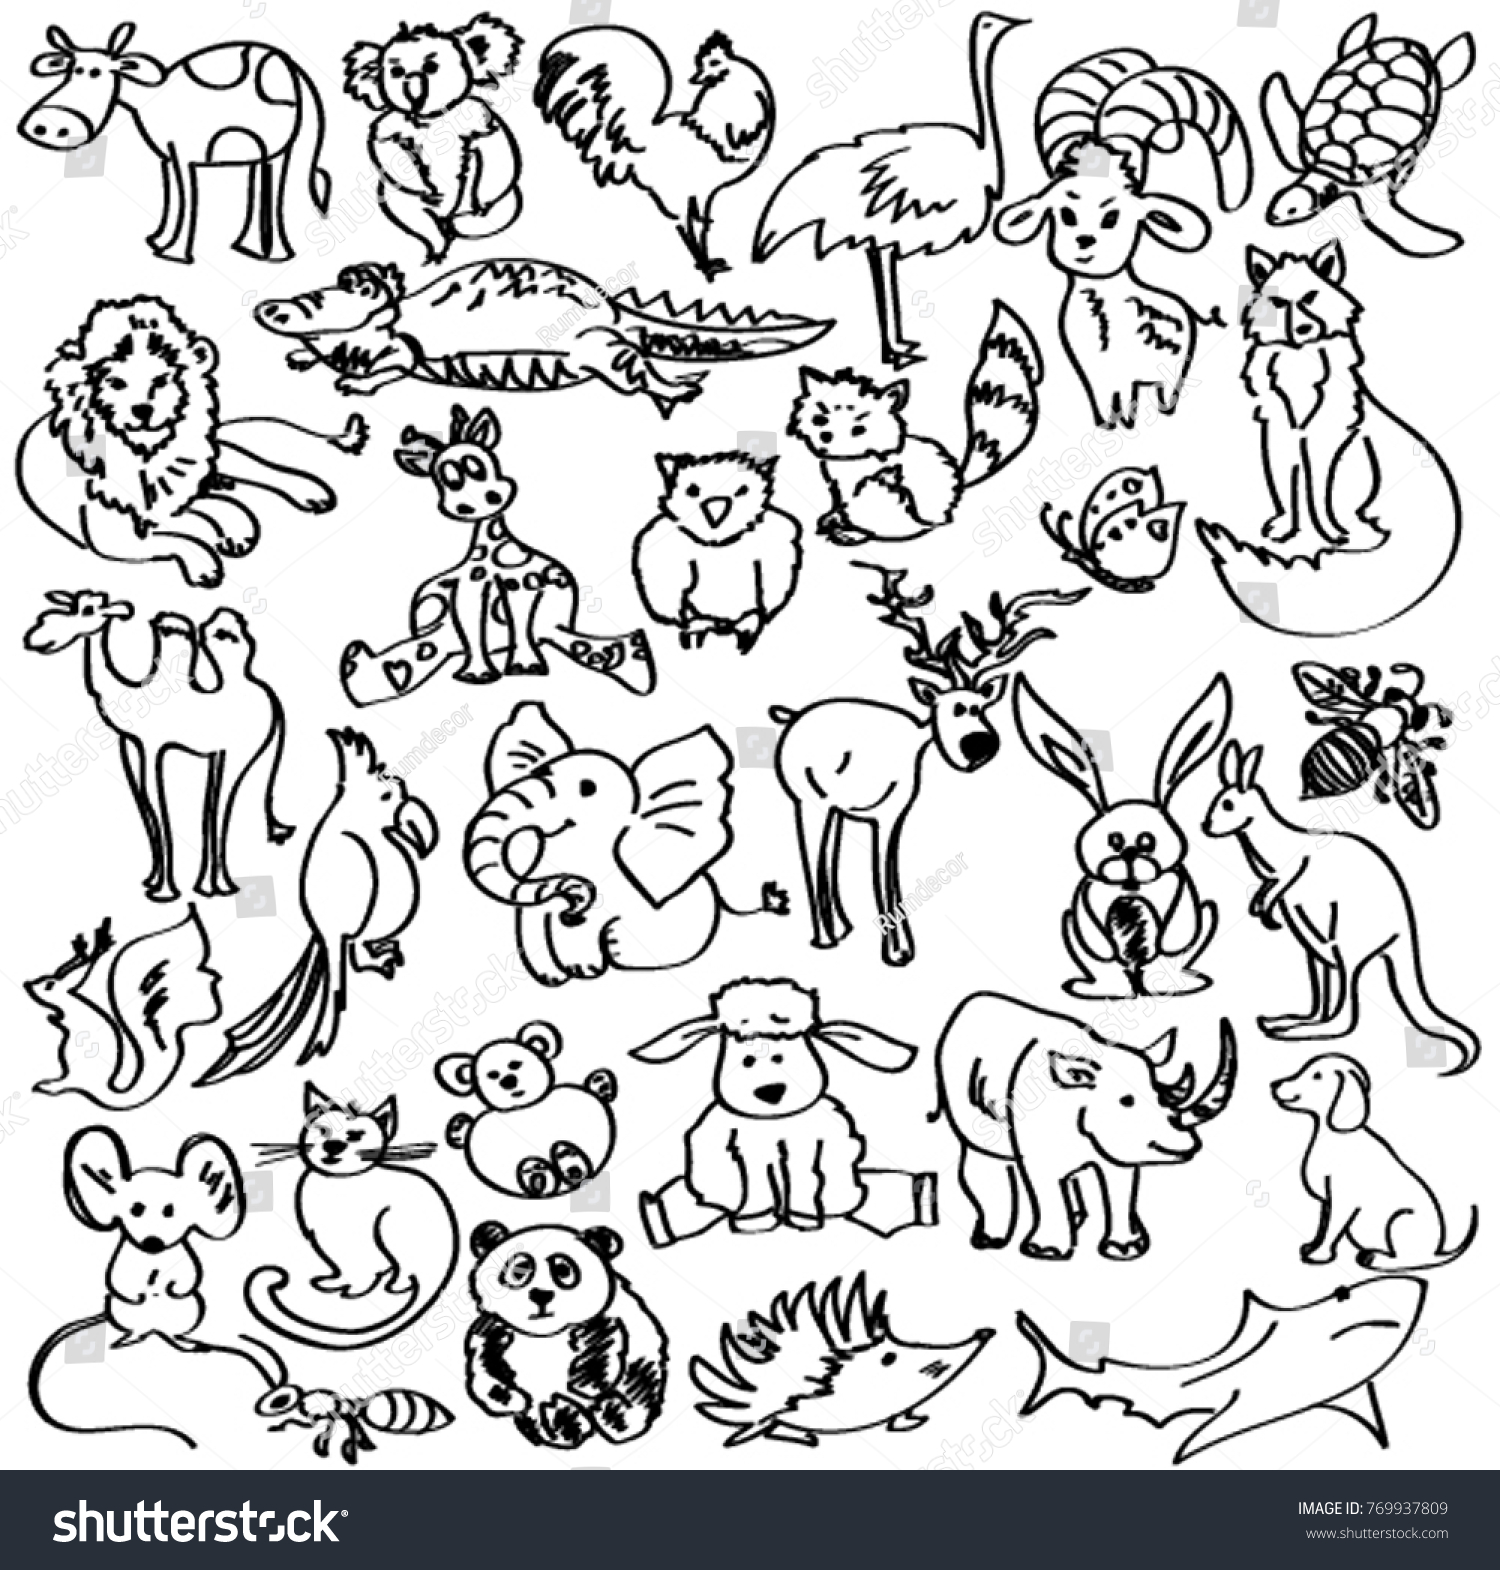 Doodles animals sketch animals black white stock vector